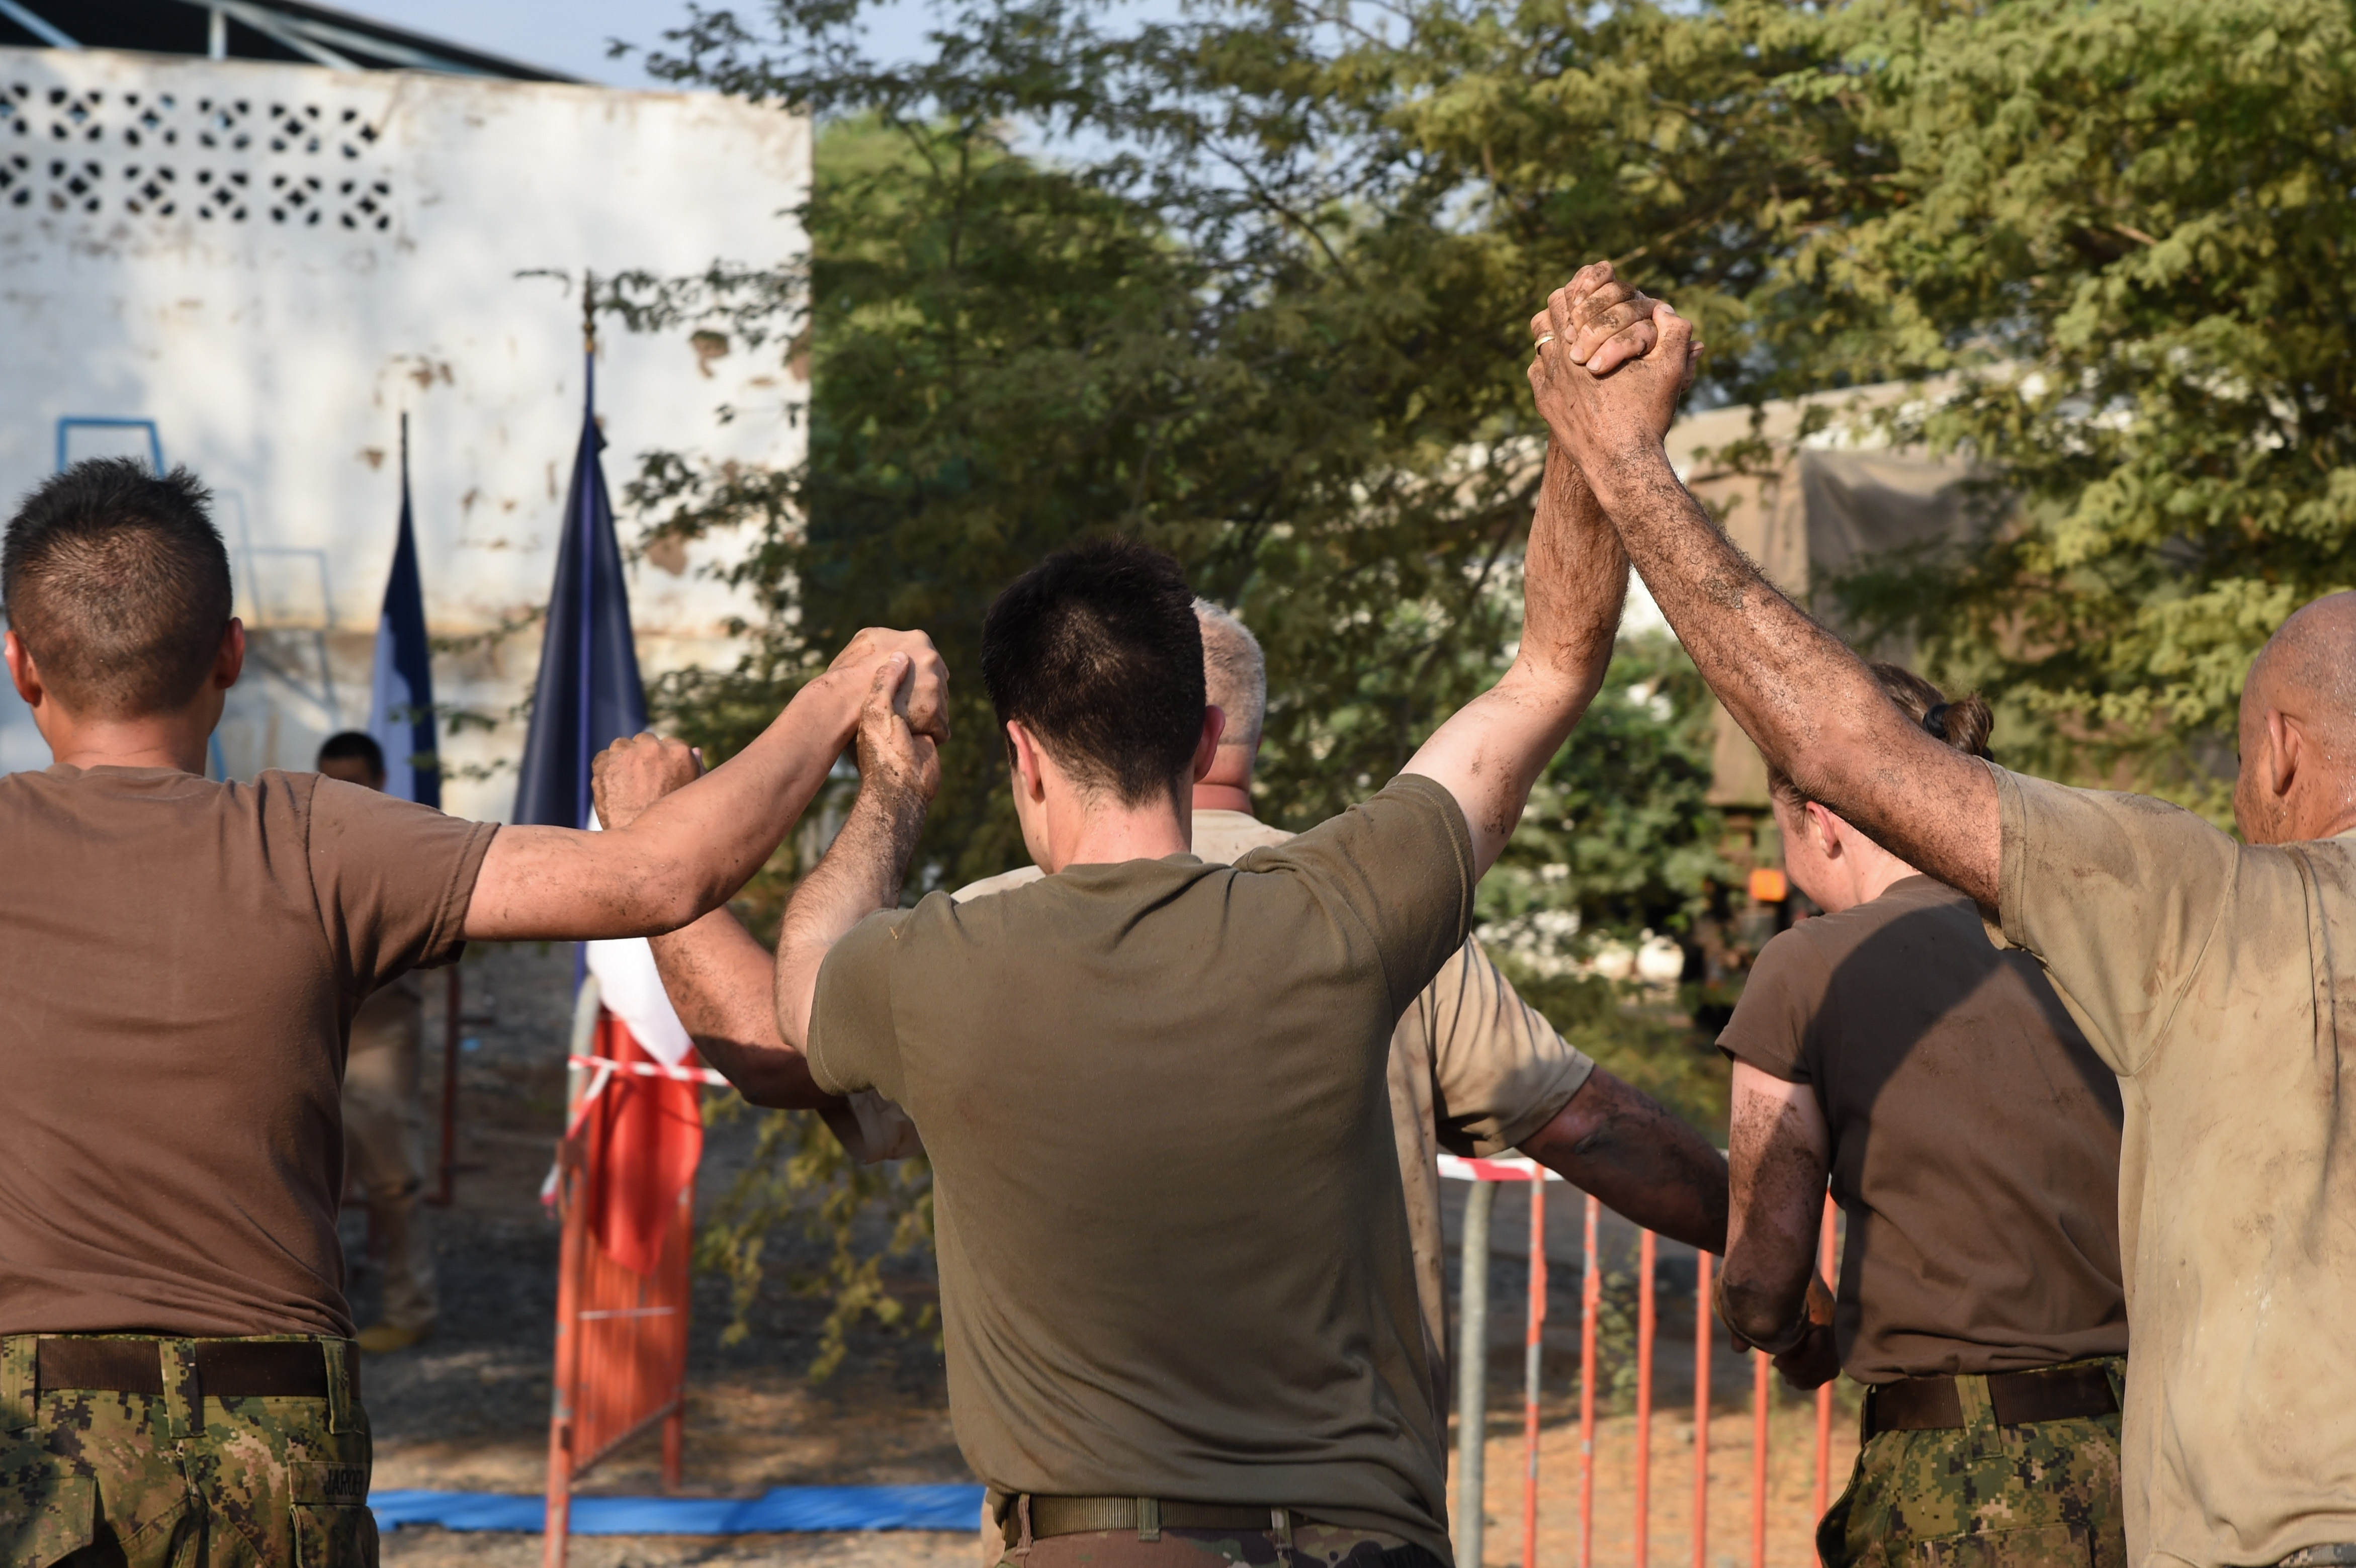 Service members from Combined Joint Task Force-Horn of Africa Civil Affairs complete the final stretch of the course during a mud run hosted by the French military, Nov. 6, 2016, in Djibouti, Djibouti. The event allowed coalition forces from French, Japanese, and American teams to interact and build camaraderie while navigating a five kilometer course. The French 5th Marine Regiment team took first place. (U.S. Air Force photo by Staff Sgt. Penny Snoozy)